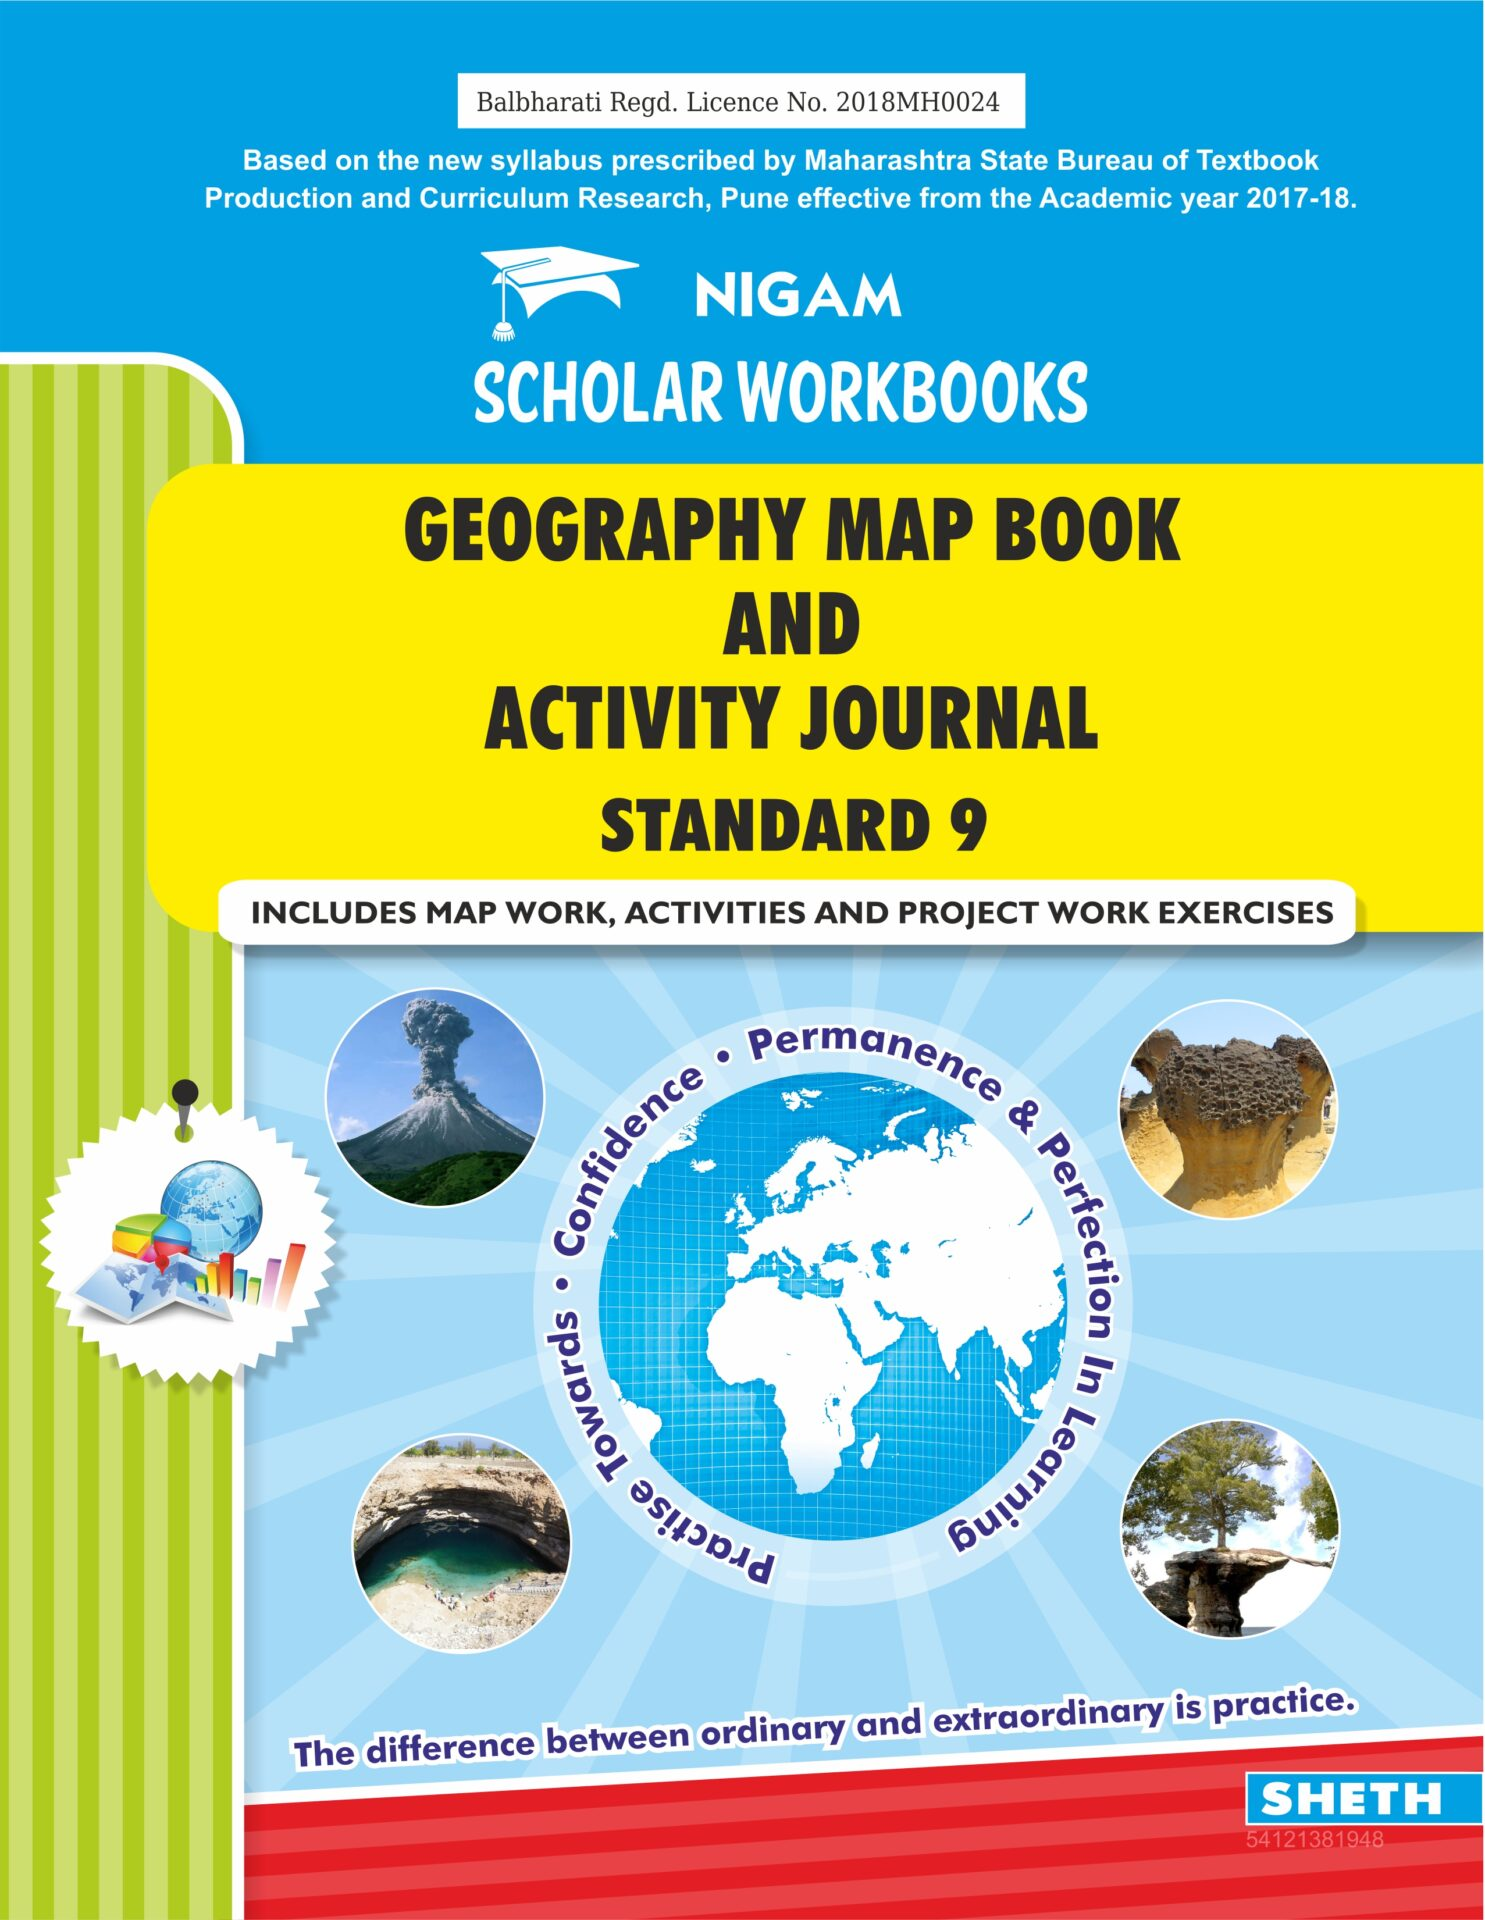 CCE Pattern Nigam Scholar Workbooks Geography Map Book And Activity Journal Standard 9 1